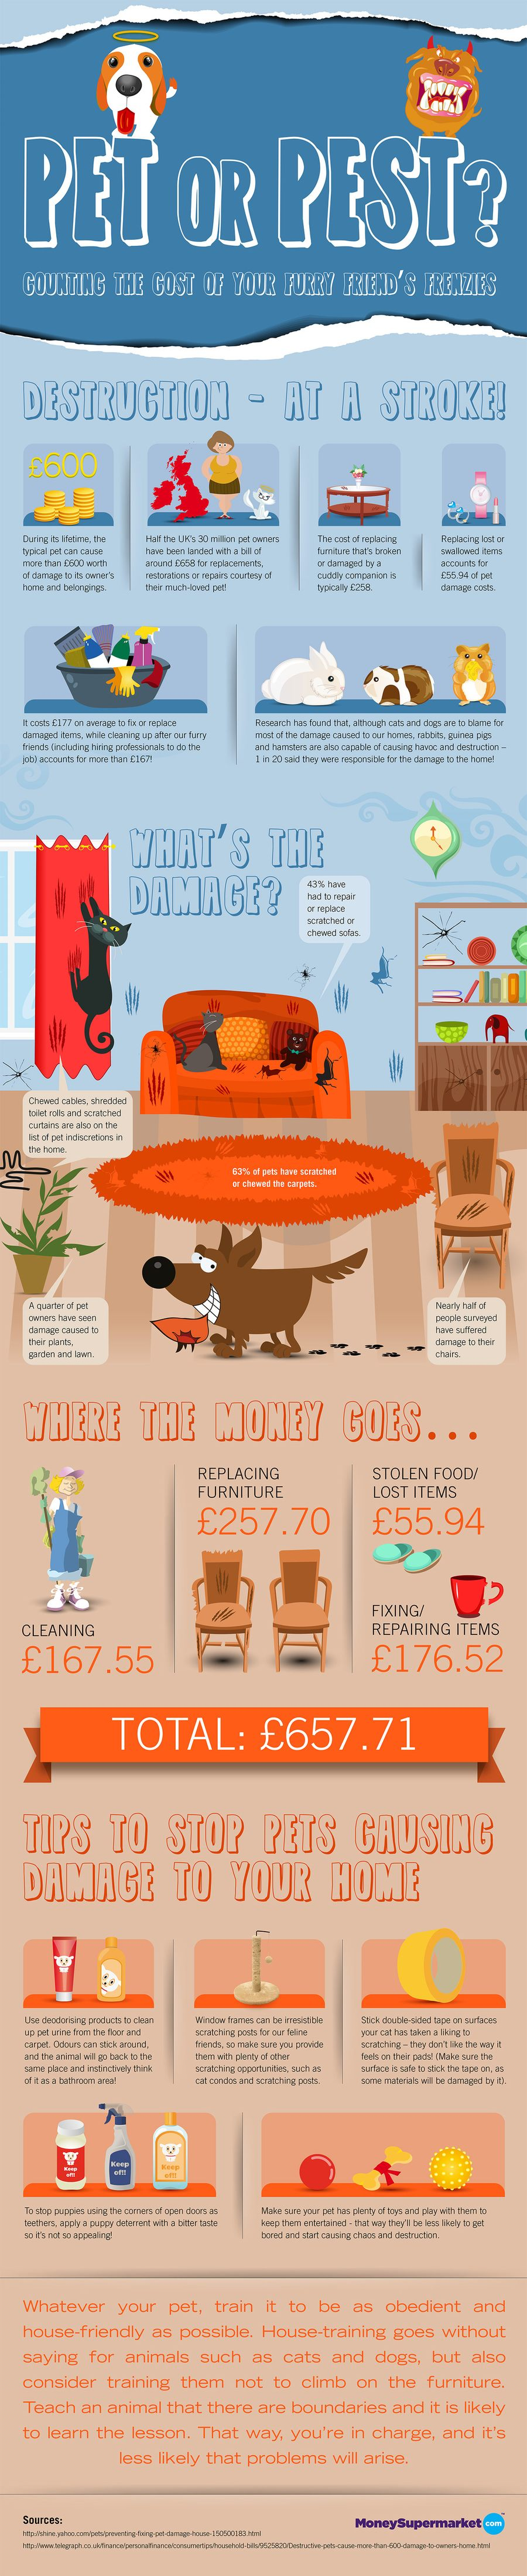 pet or pest infographic